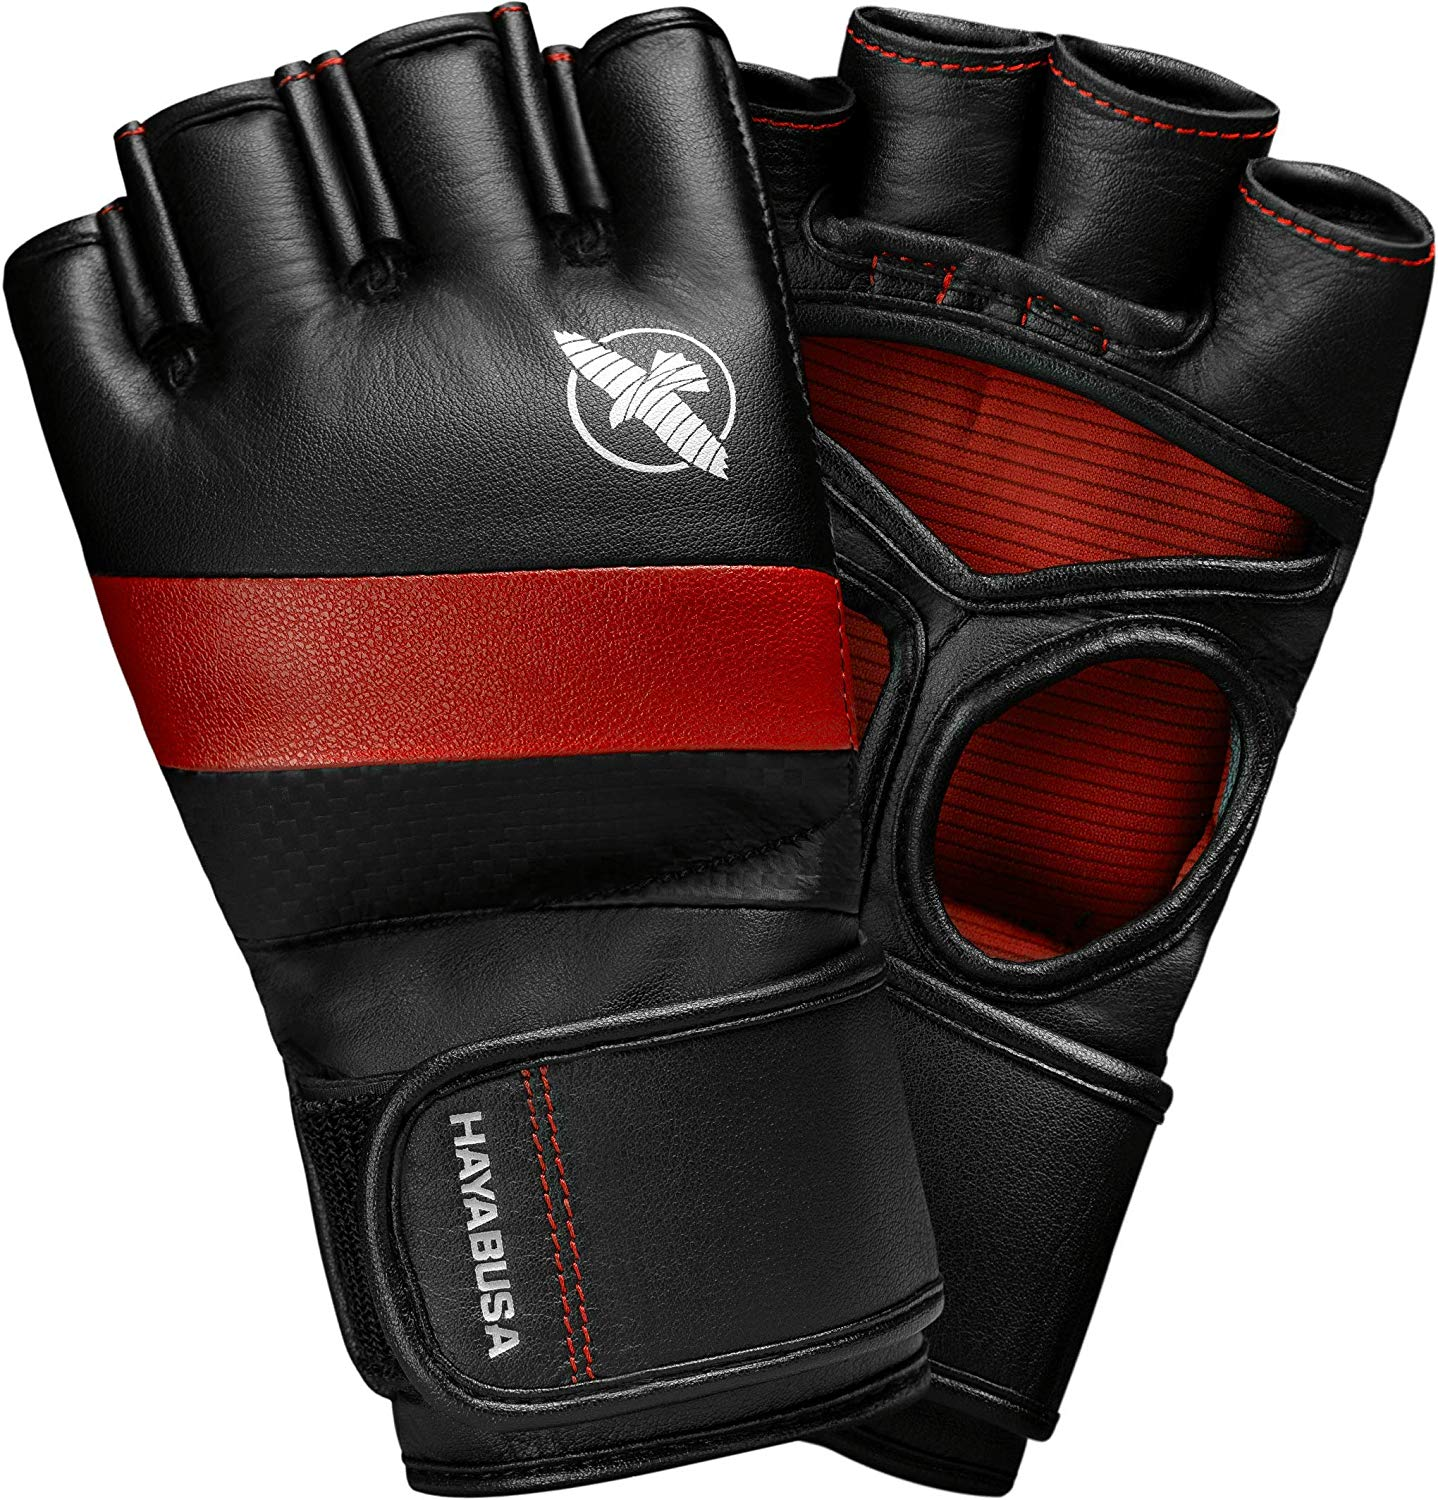 Pro-Style MMA Gloves in Genuine Leather for Professional Training /& Competition.